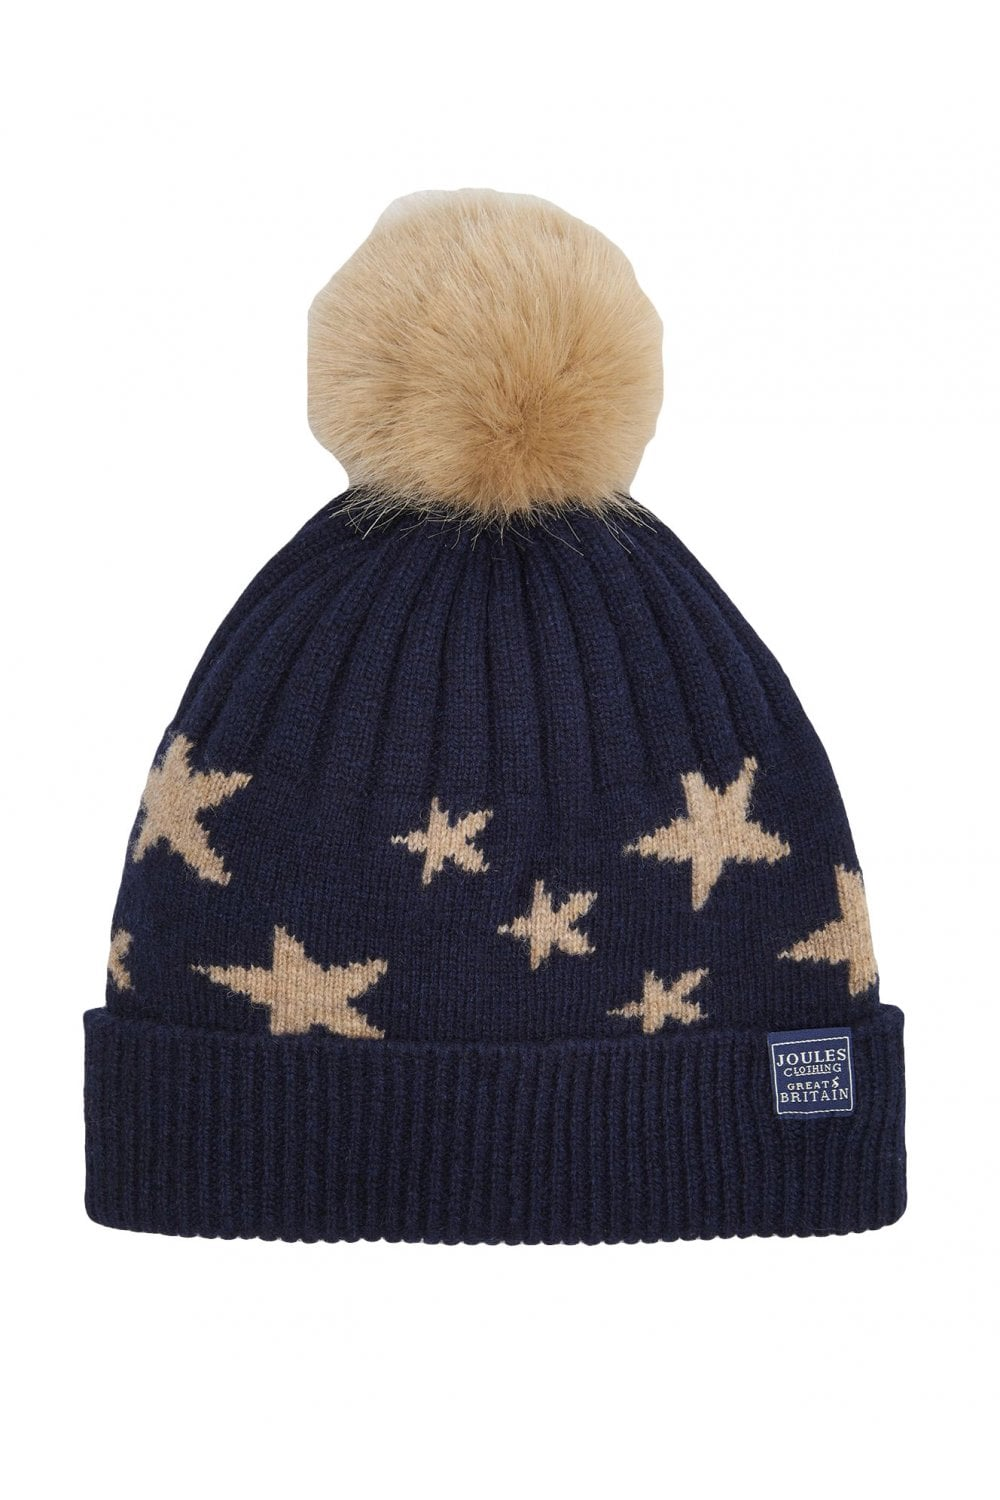 89c1c663553af Joules Womens Saffy Intarsia Bobble Hat - Navy Star - Womenswear ...